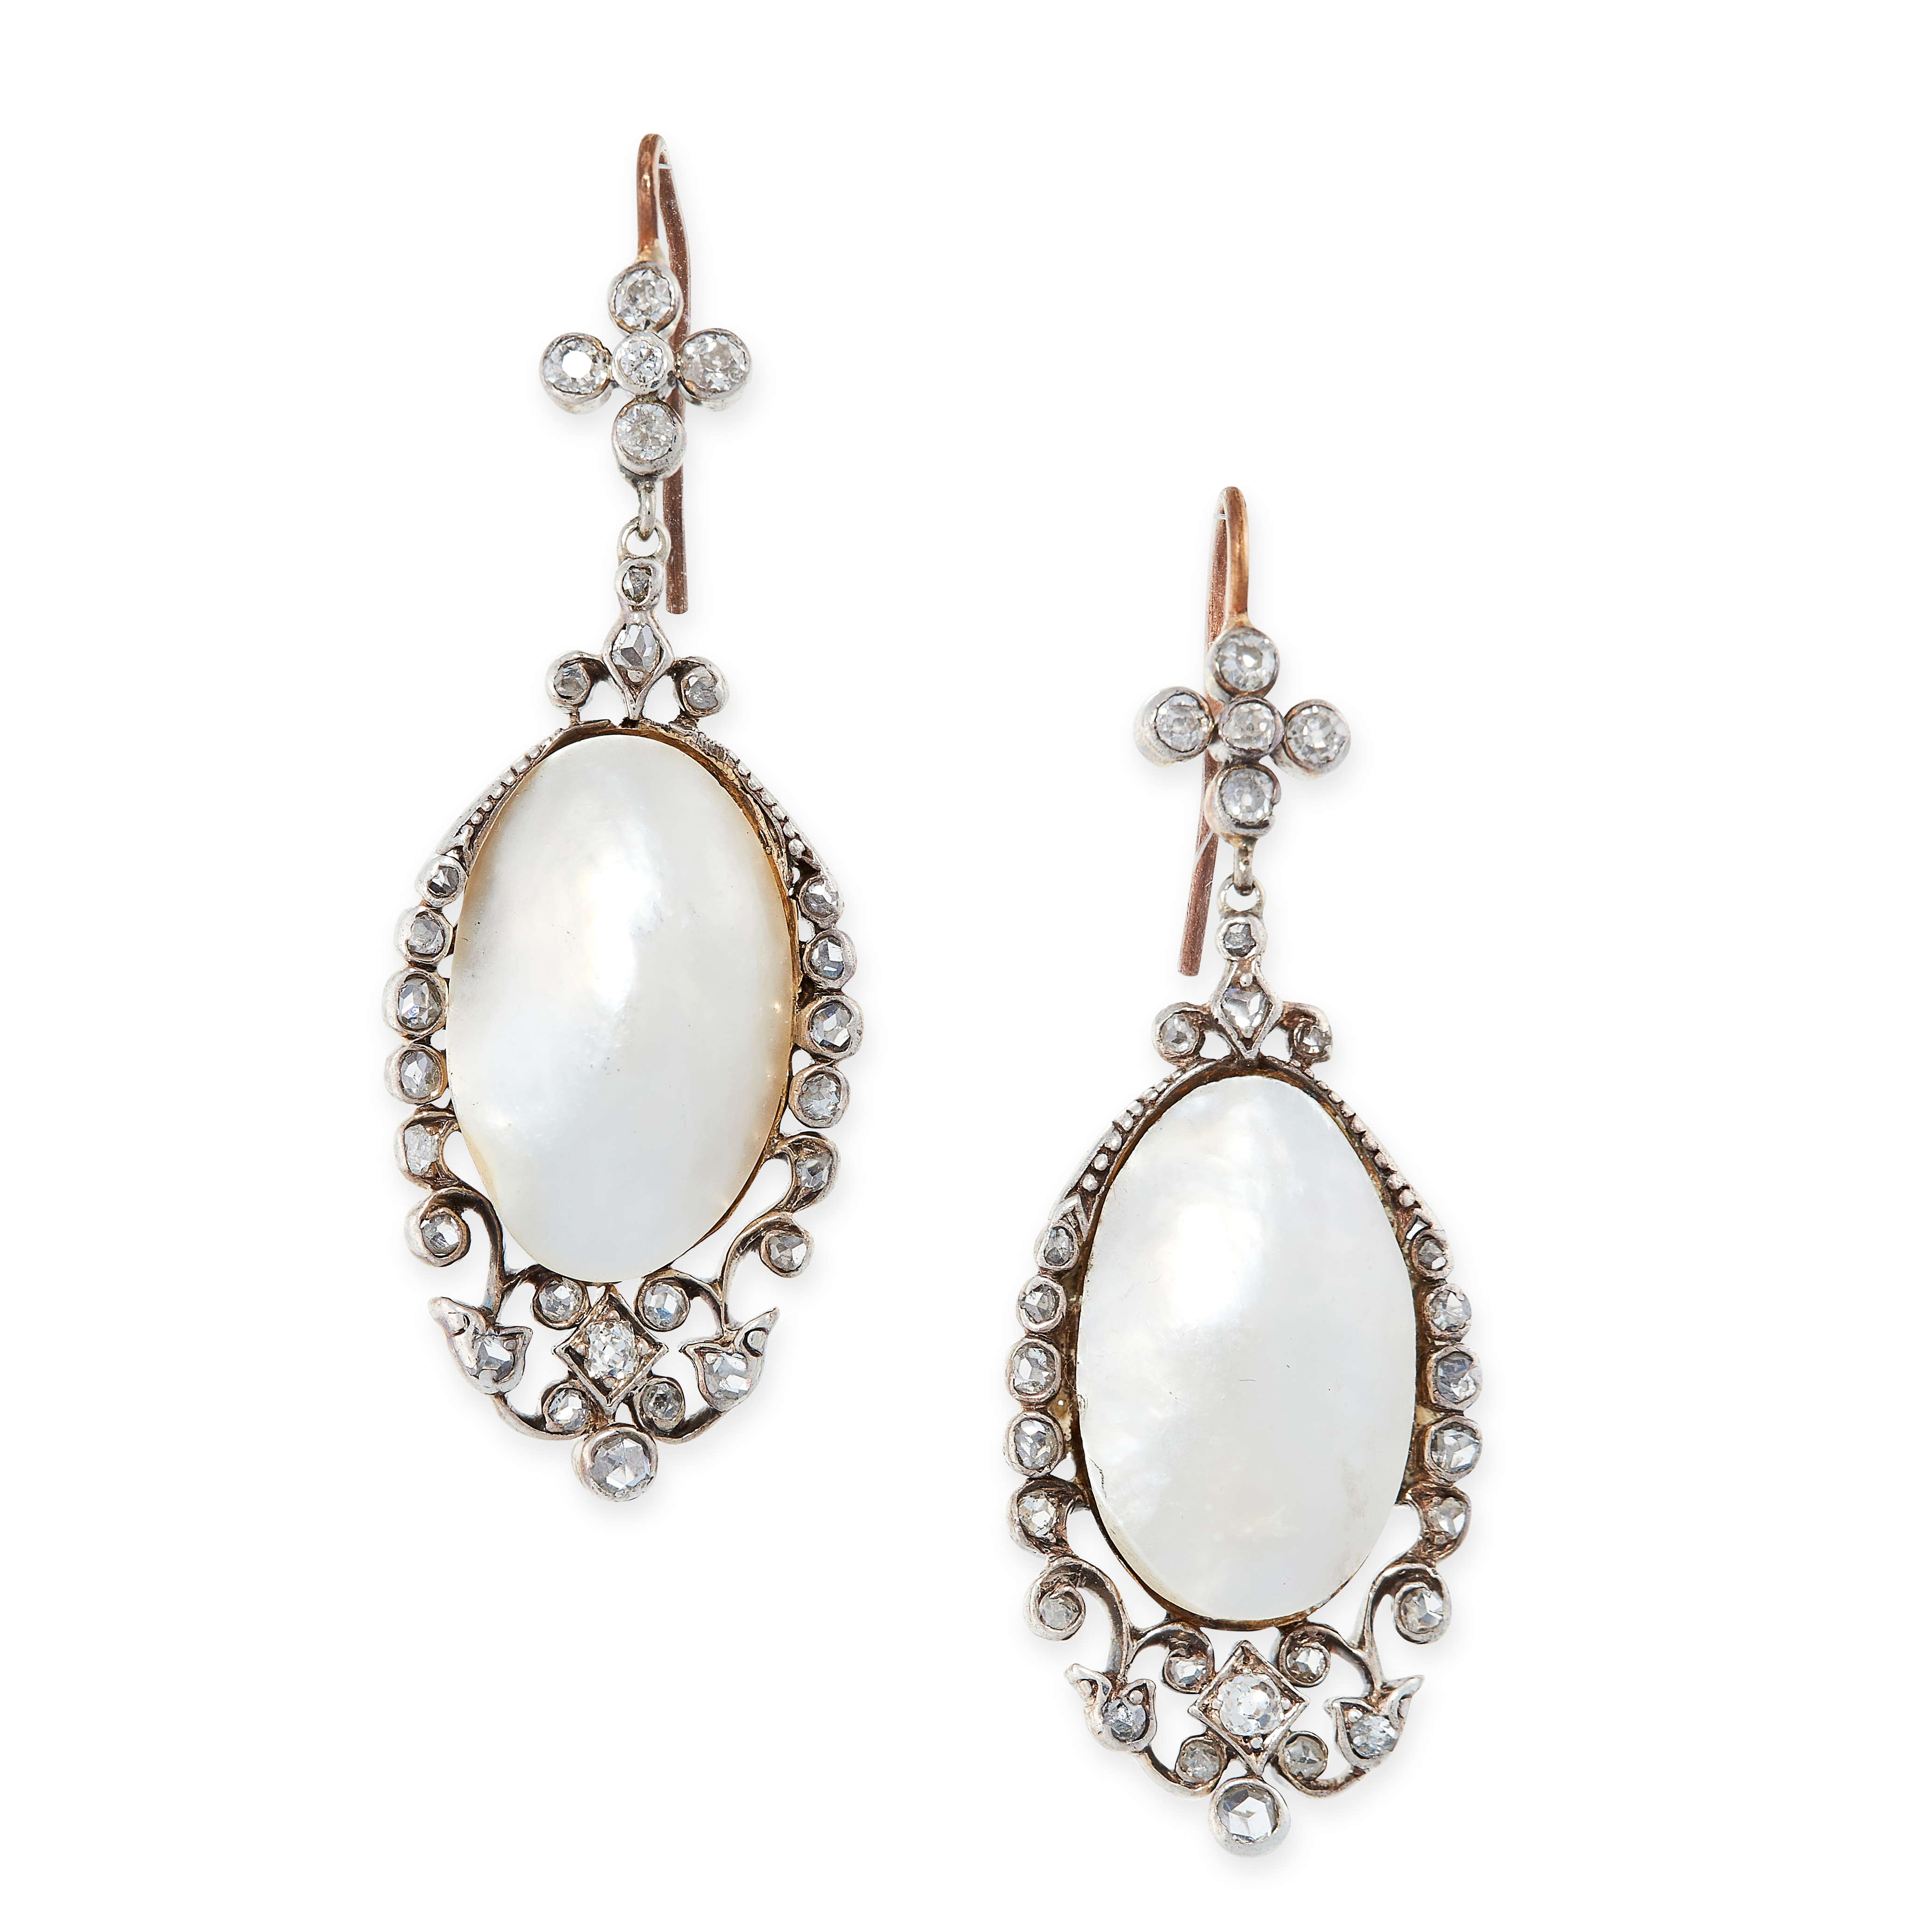 A PAIR OF ANTIQUE PEARL AND DIAMOND EARRINGS in yellow gold and silver, each set with a drop